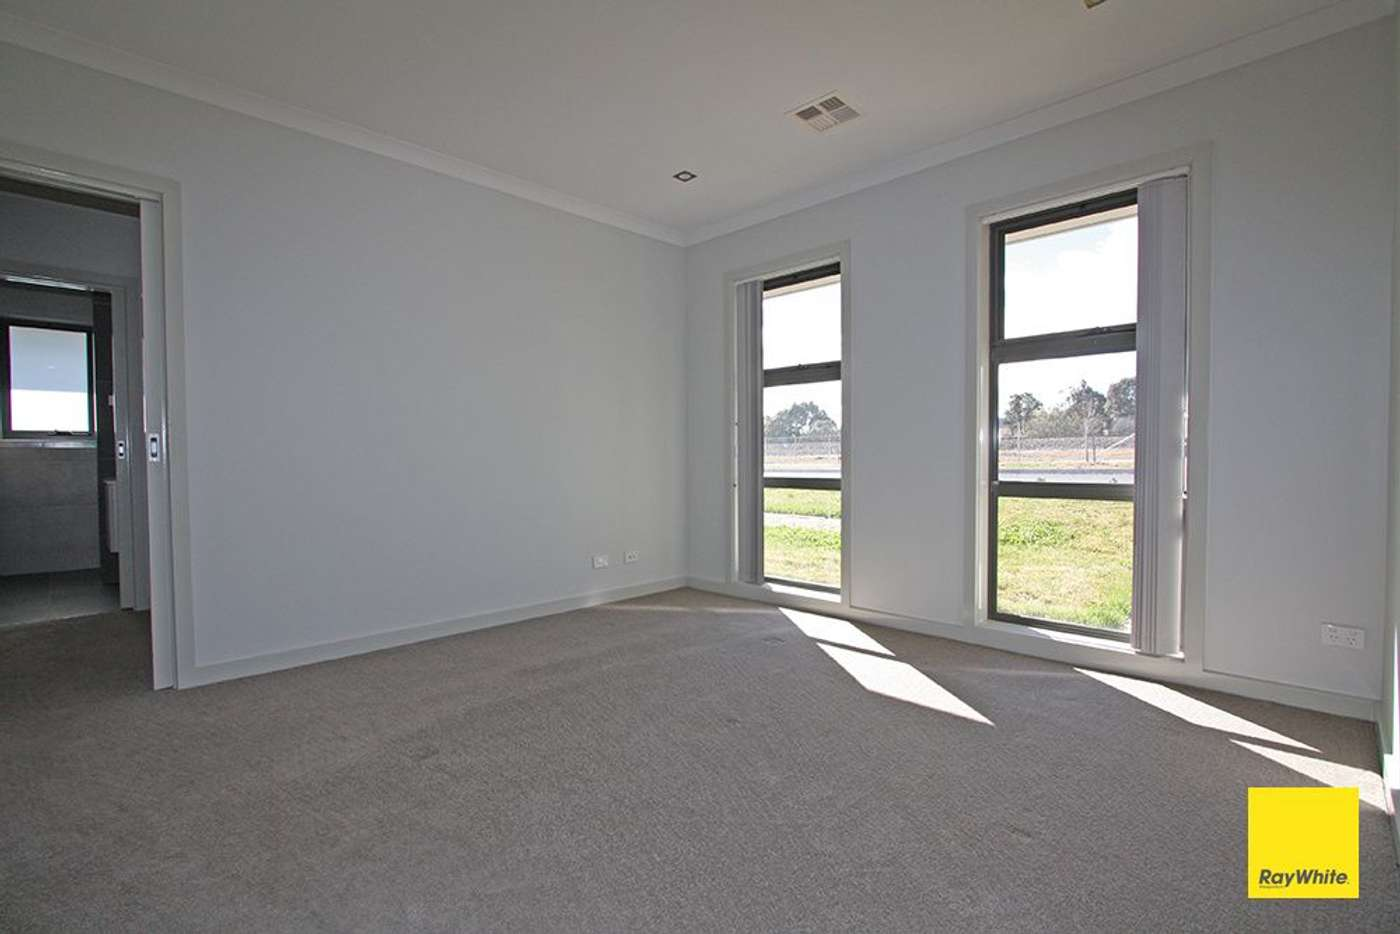 Sixth view of Homely house listing, 171 Majara Street, Bungendore NSW 2621